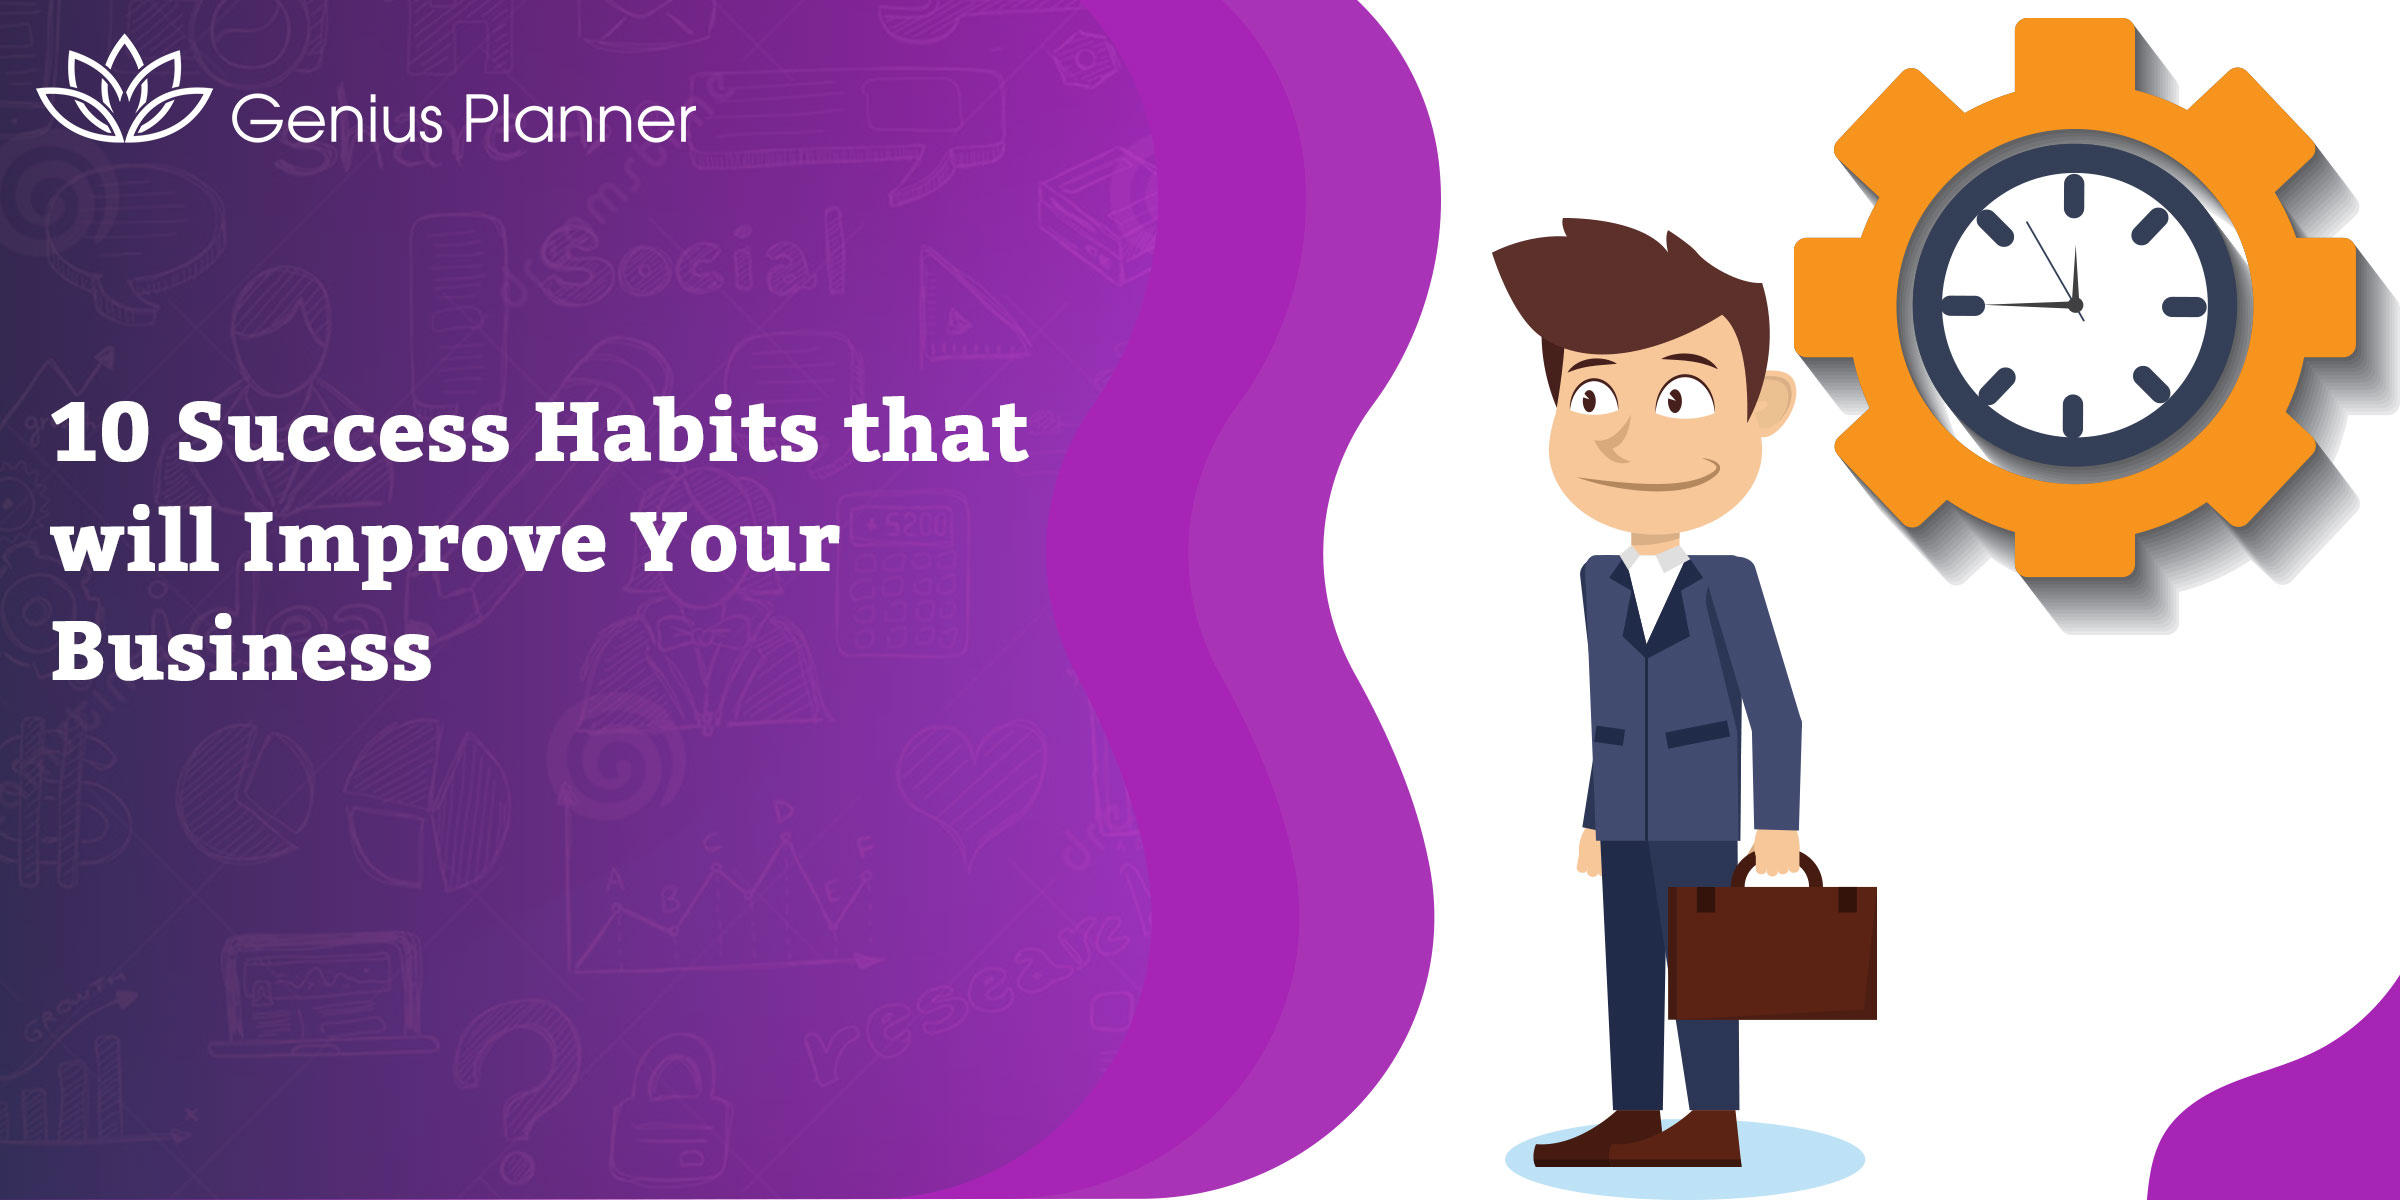 10 Success Habits that will Improve Your Business